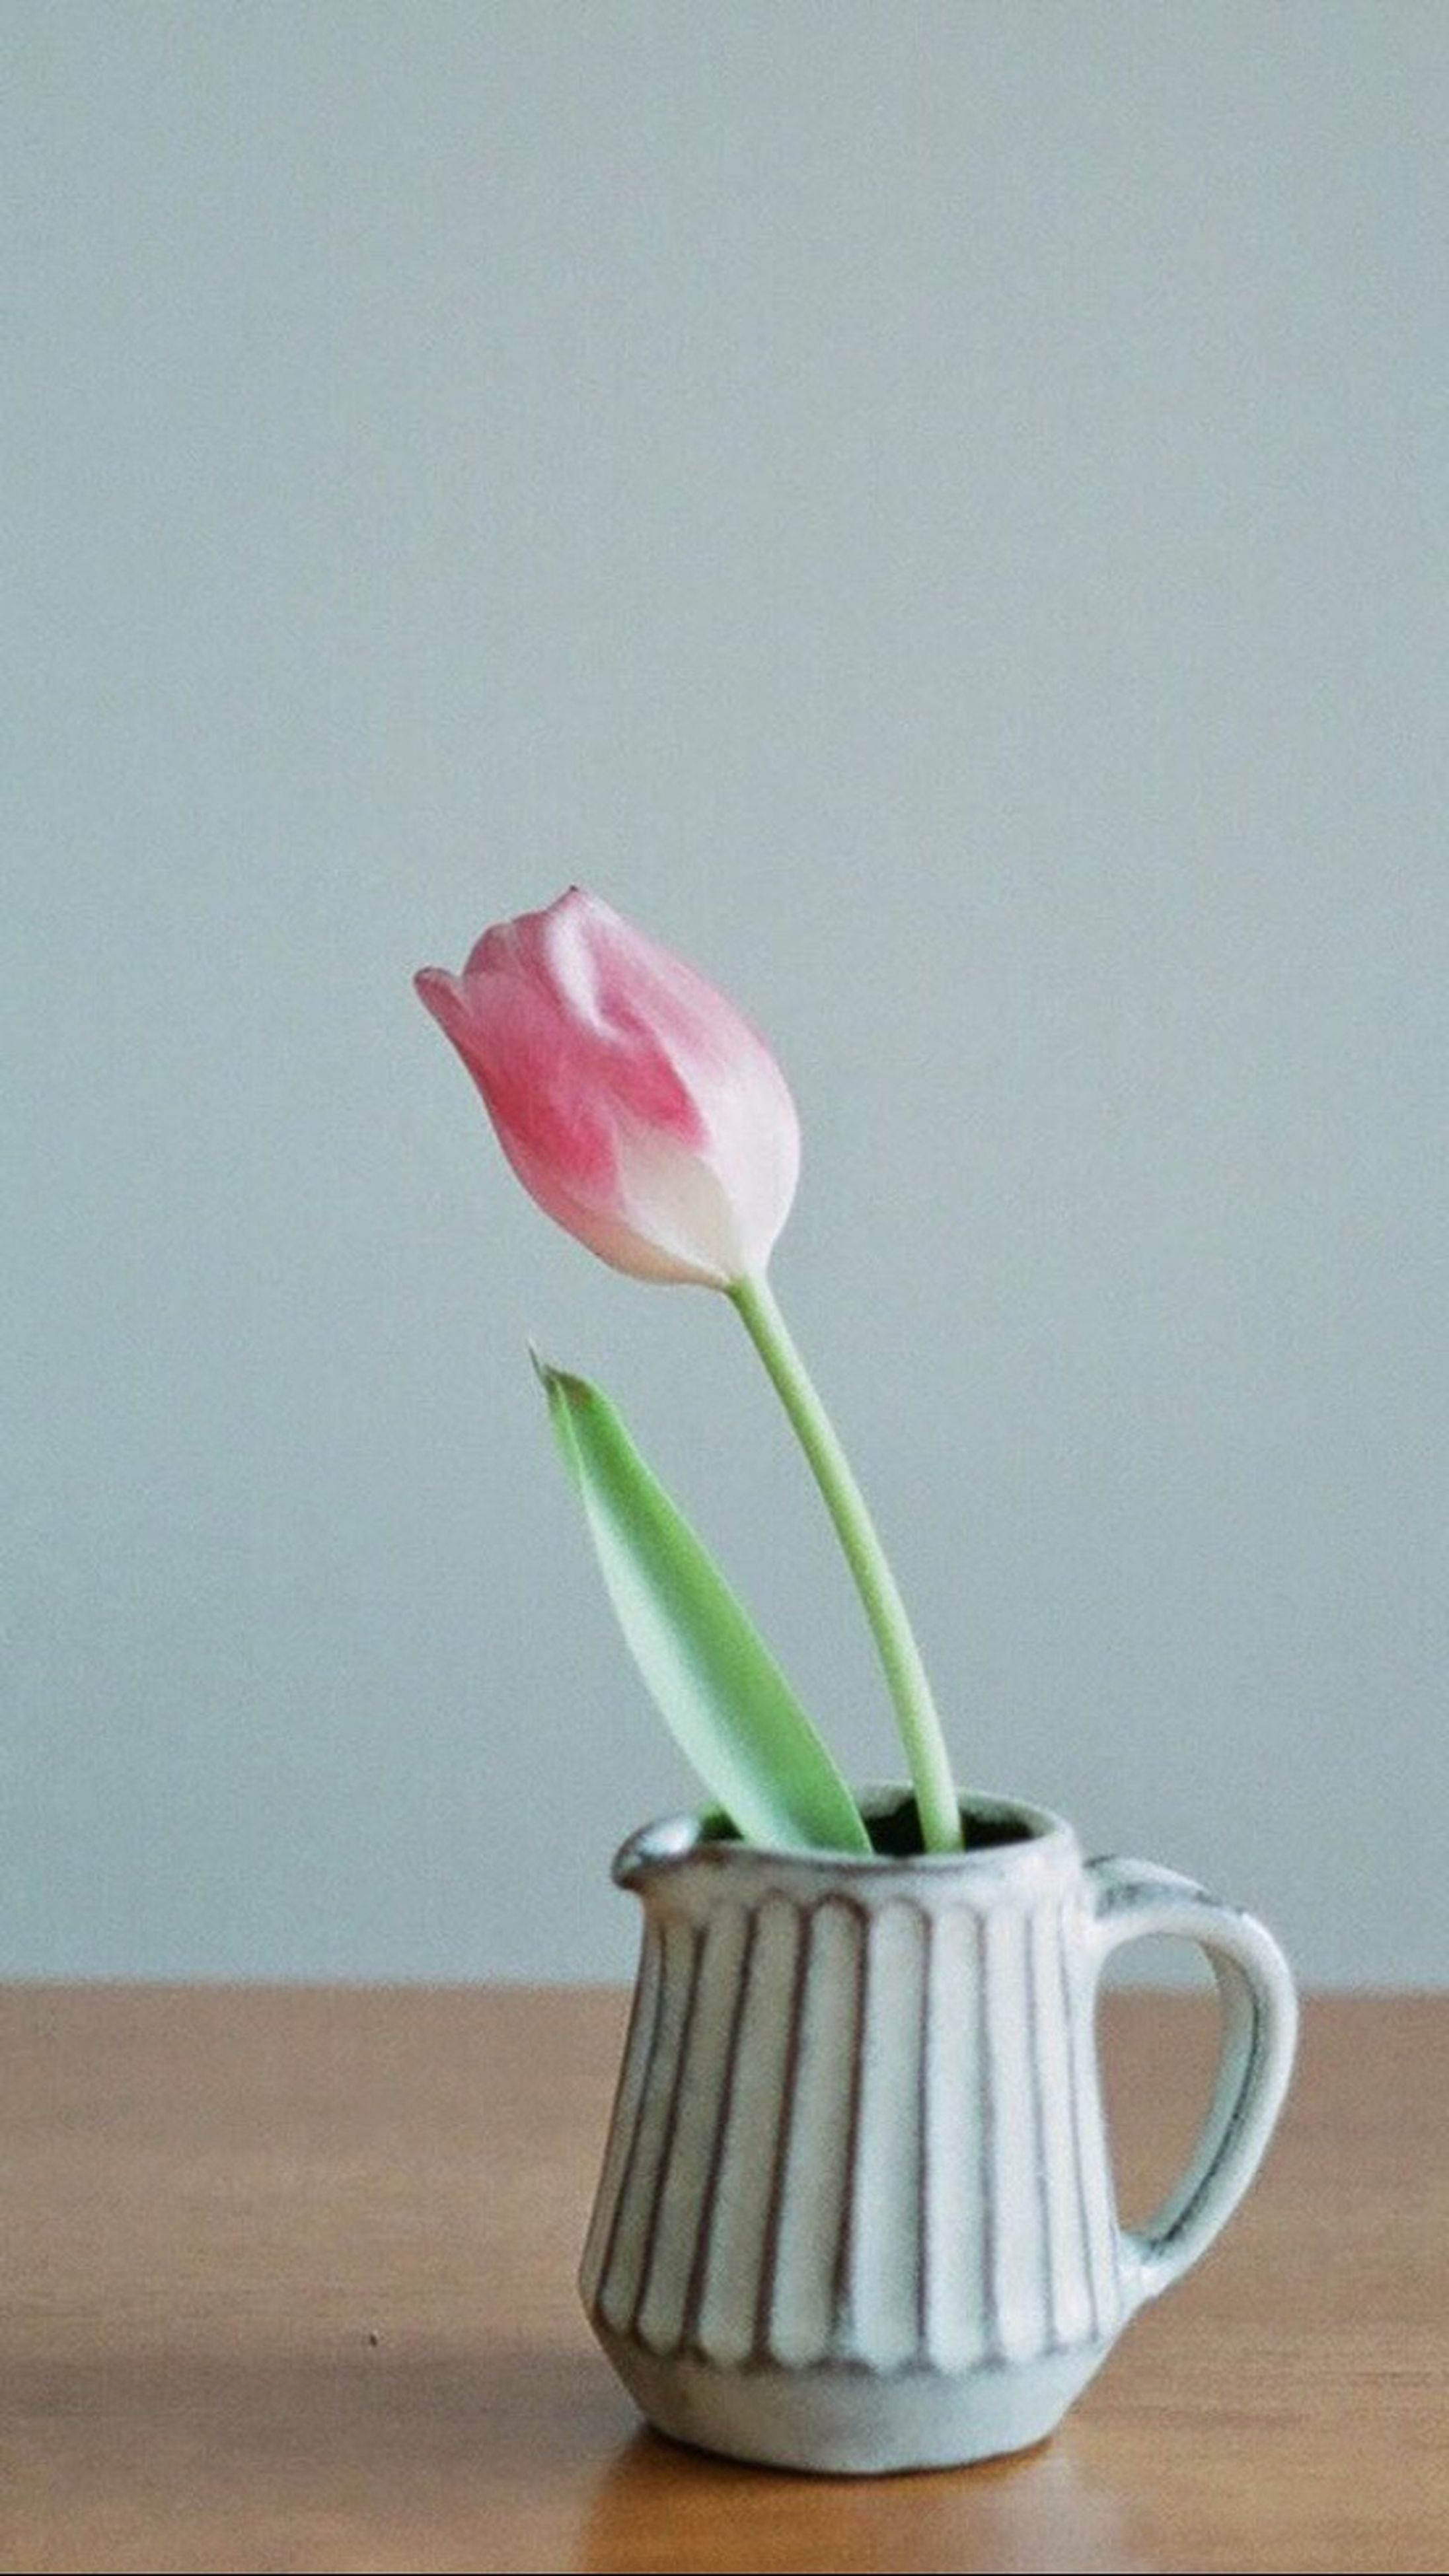 flower, freshness, no people, green color, table, indoors, nature, fragility, tulip, beauty in nature, flower head, close-up, day